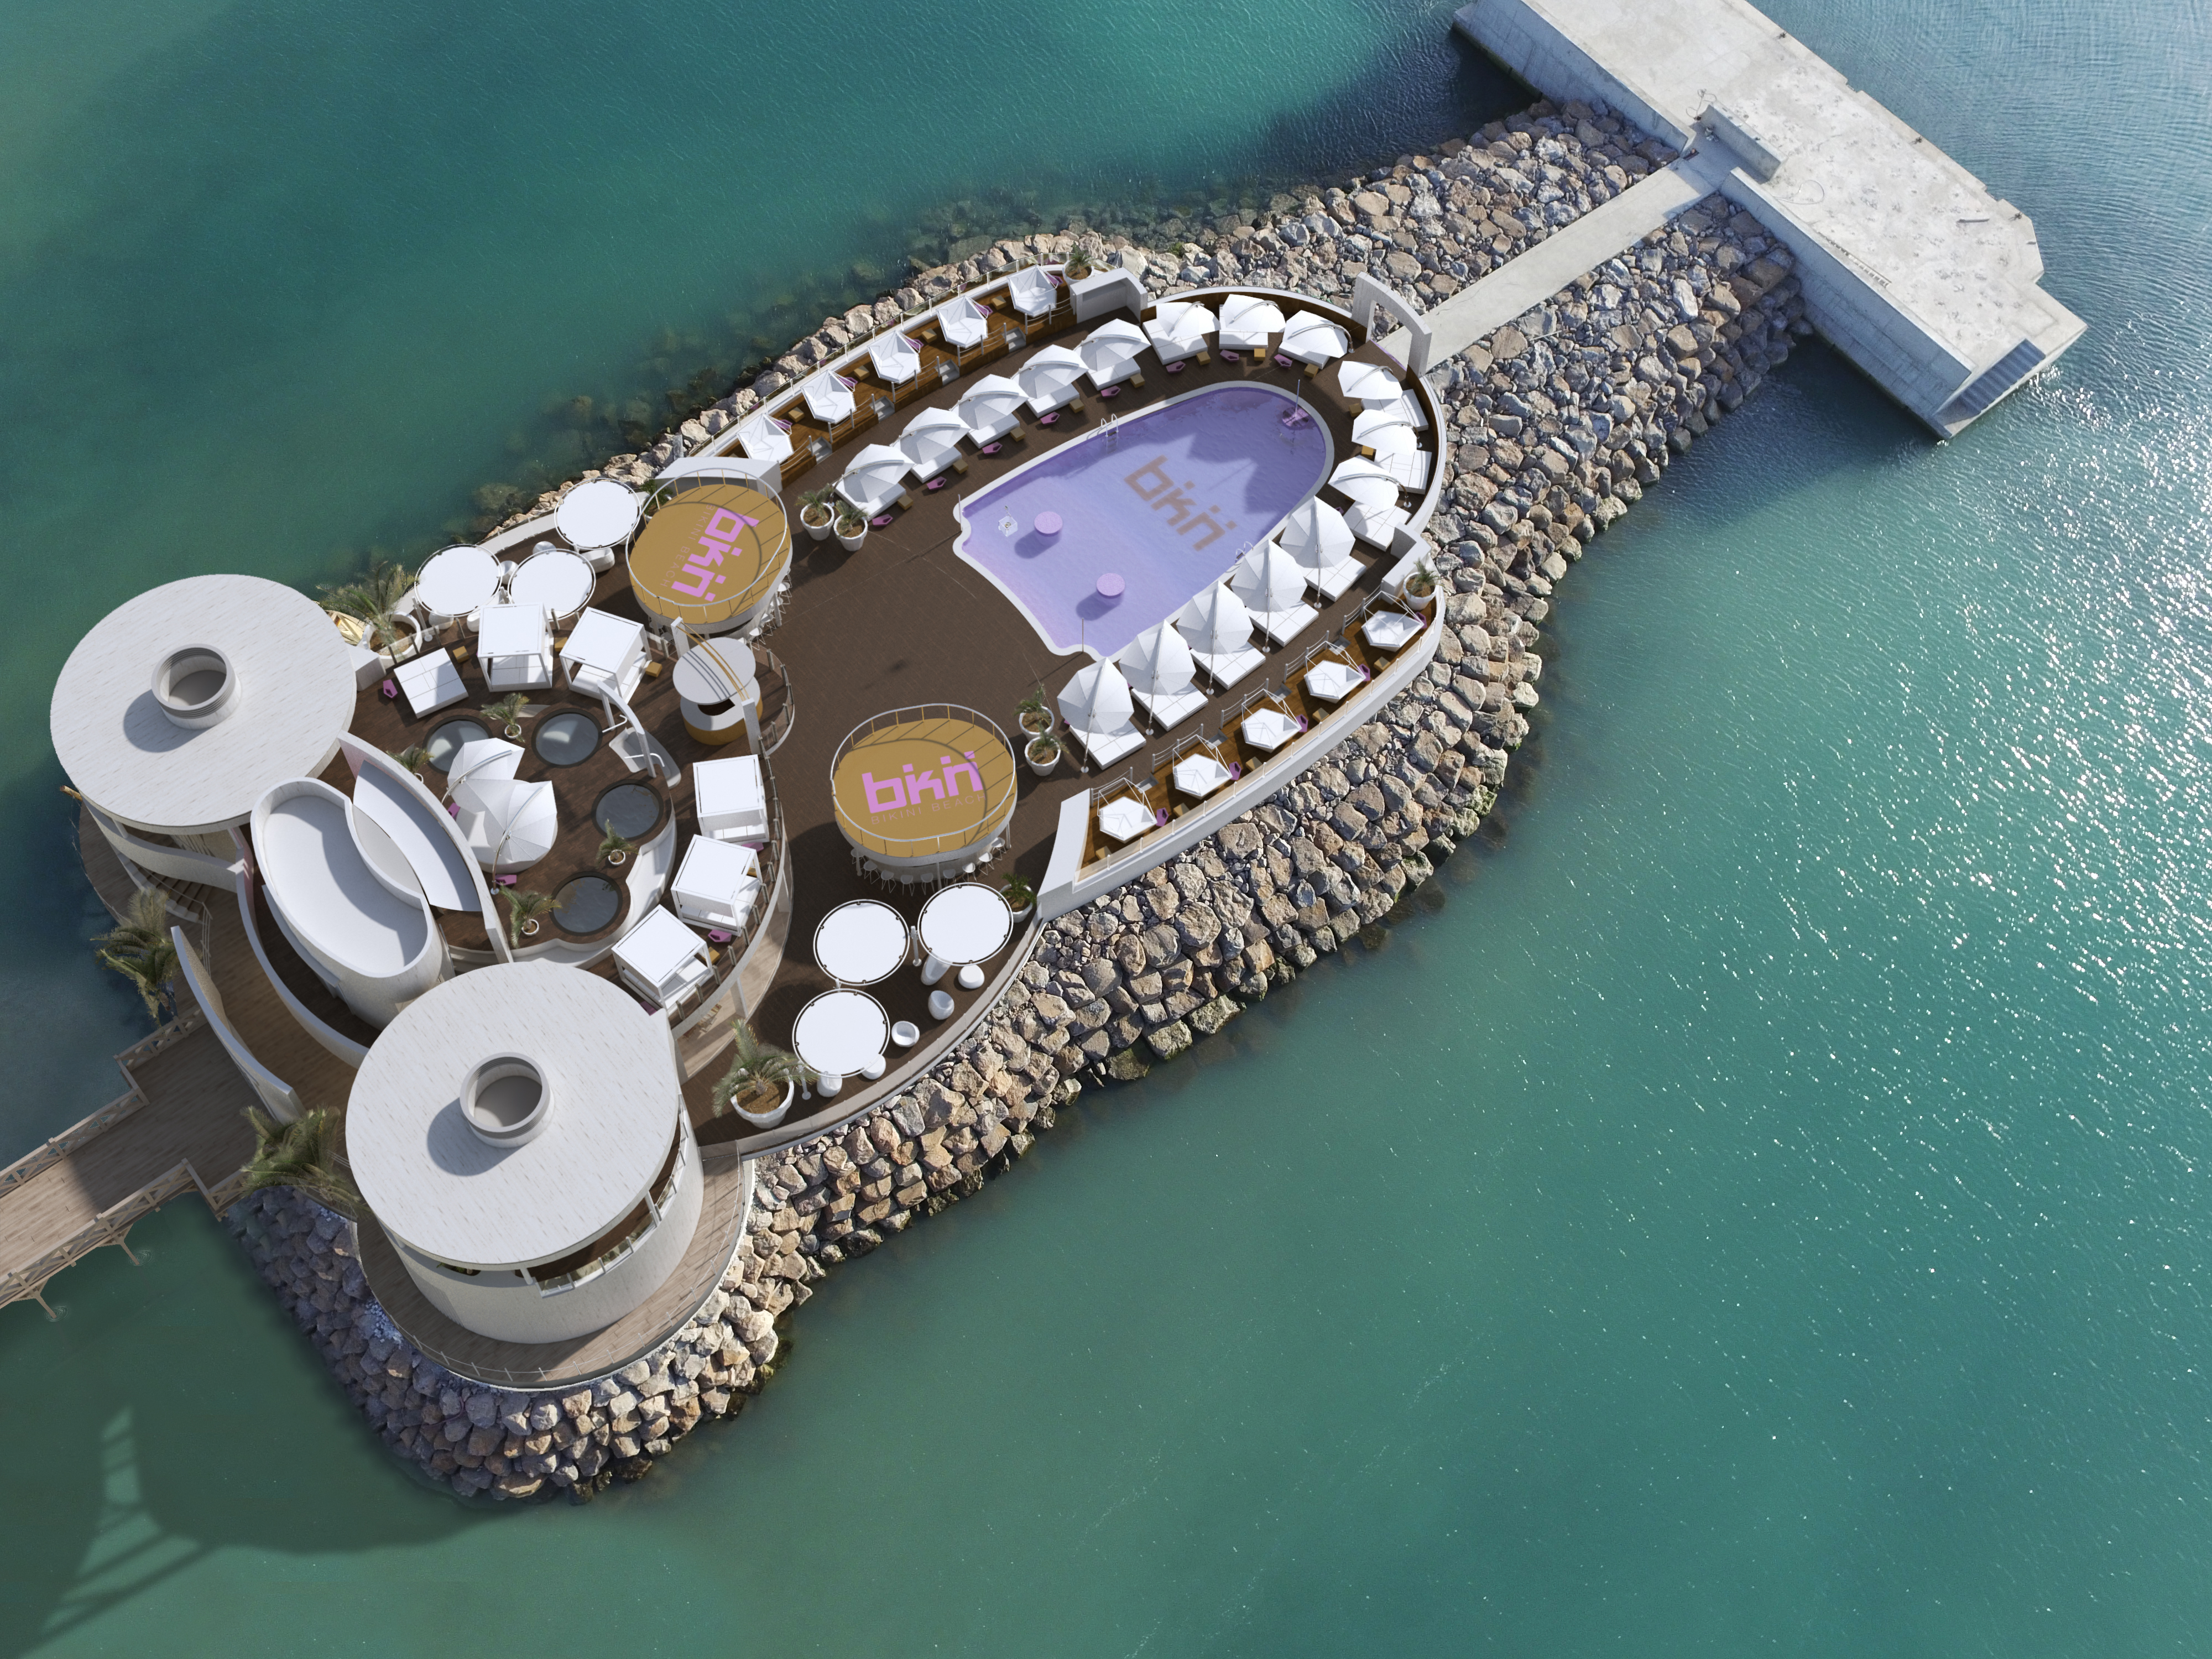 BEACH CLUB AERIAL VIEW